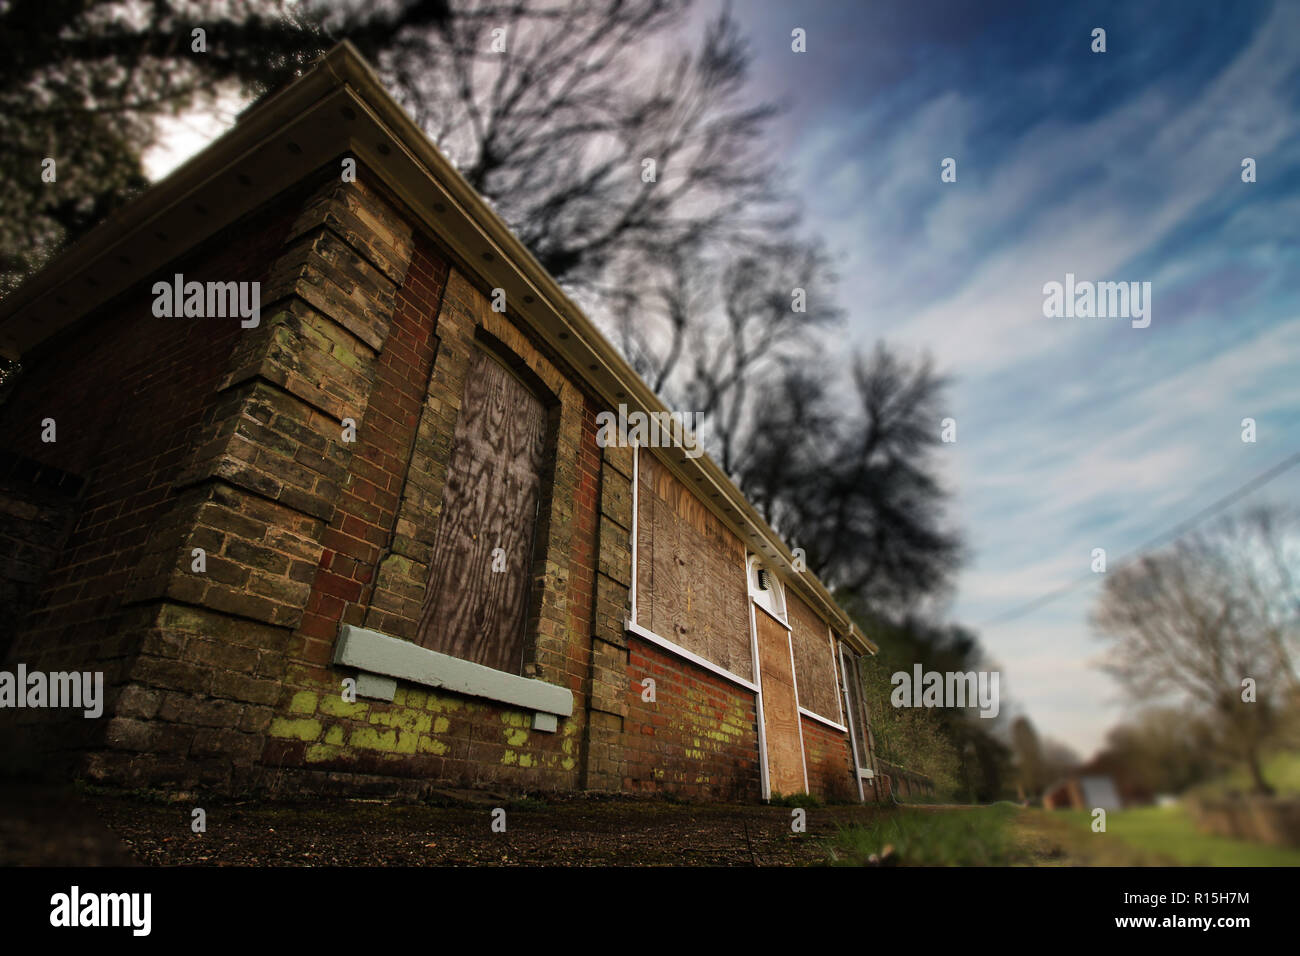 Abandoned train station in clare castle country park, suffolk. - Stock Image